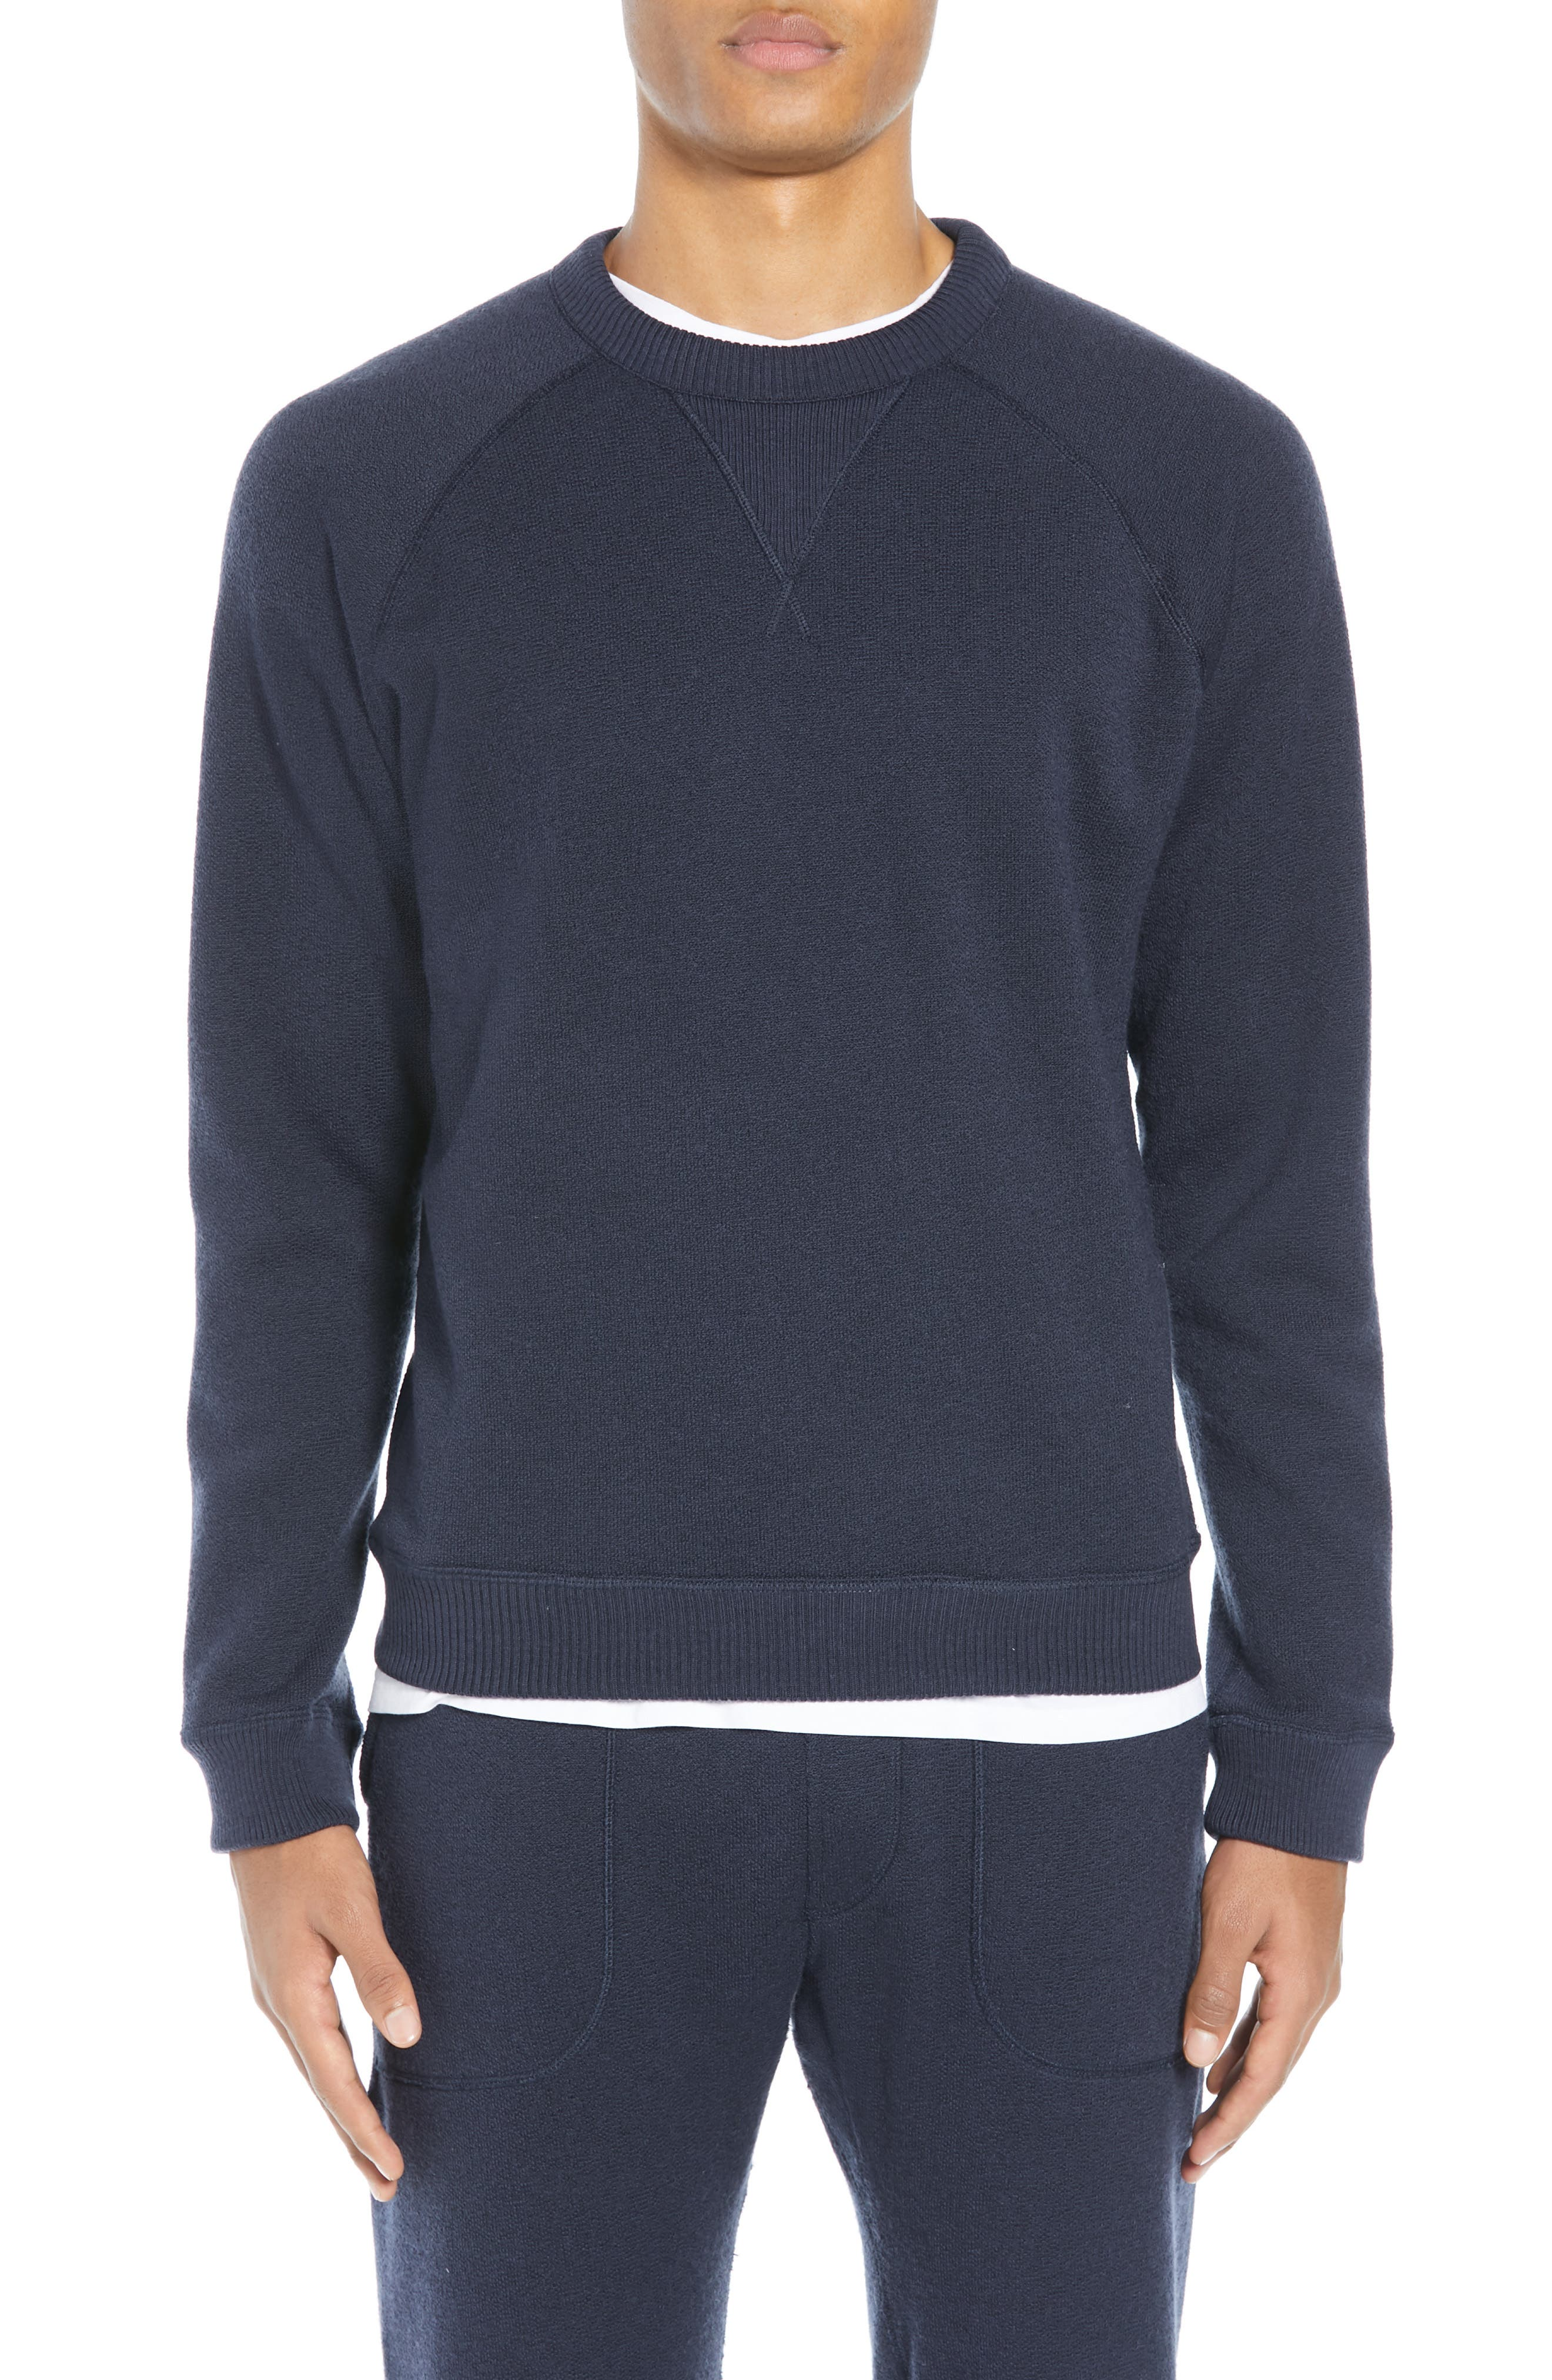 BEST MADE CO., The Merino Wool Fleece Crew Sweatshirt, Alternate thumbnail 2, color, 410